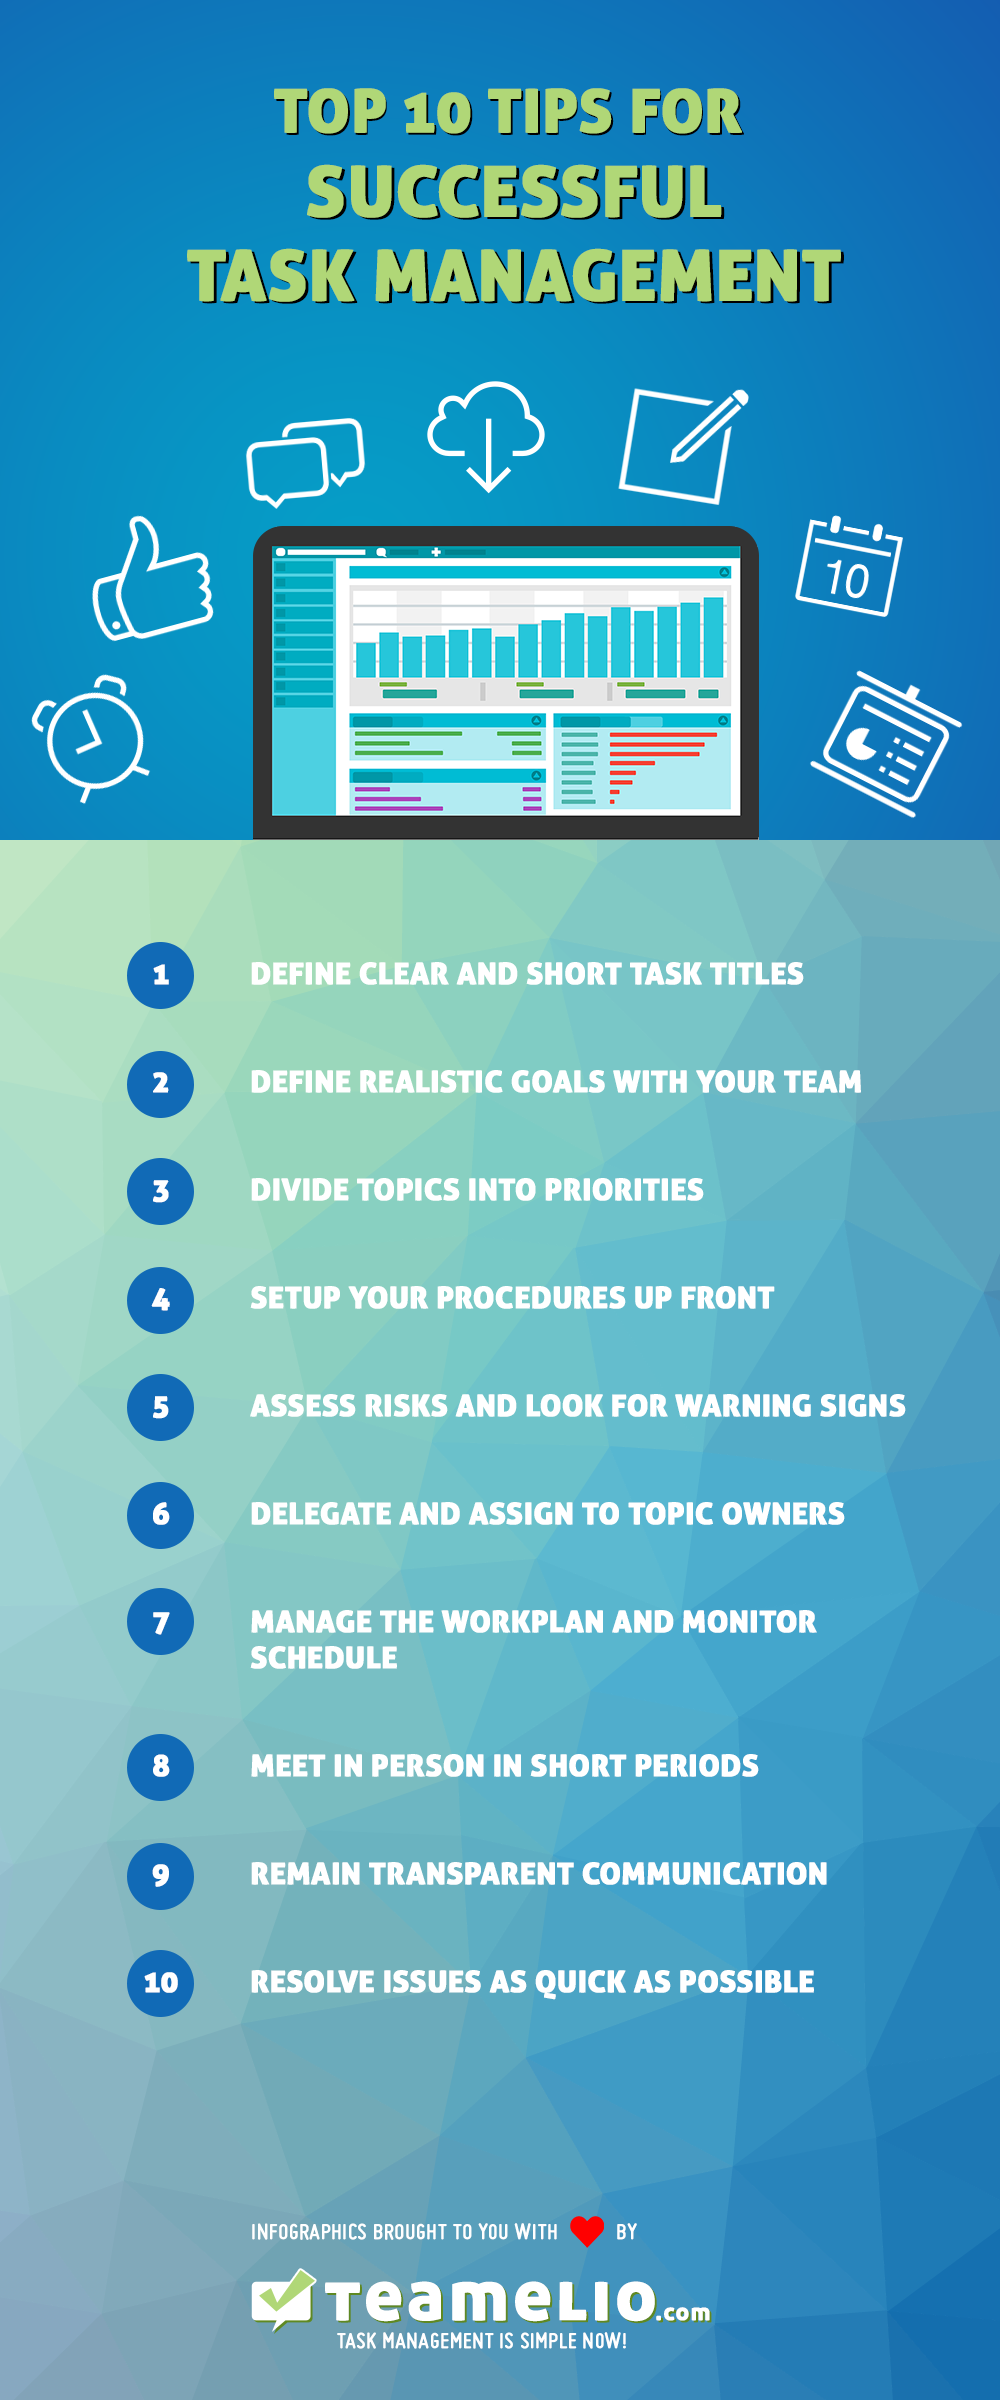 Top 10 Tips For Successful Task Management